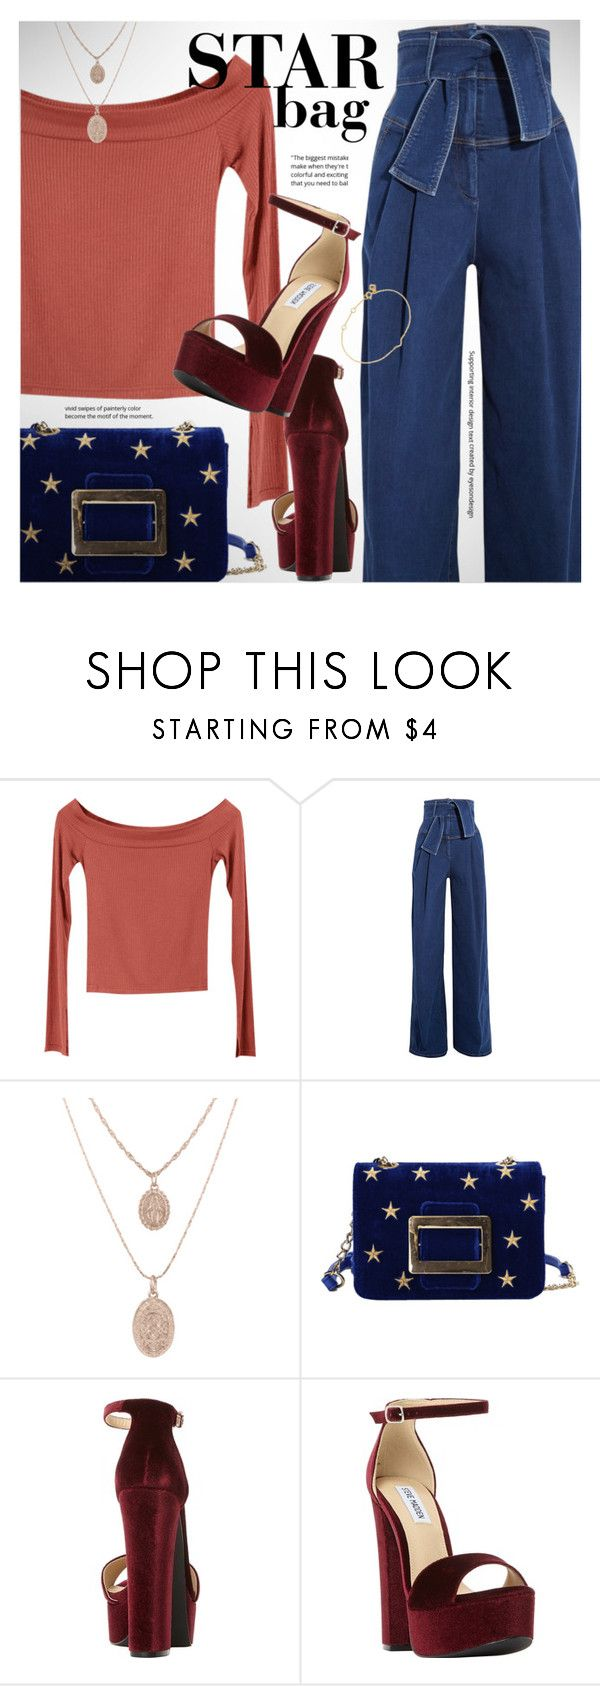 """""""Star bag"""" by vn1ta ❤ liked on Polyvore featuring Sara Battaglia, Steve Madden, Maya Magal and vintage"""